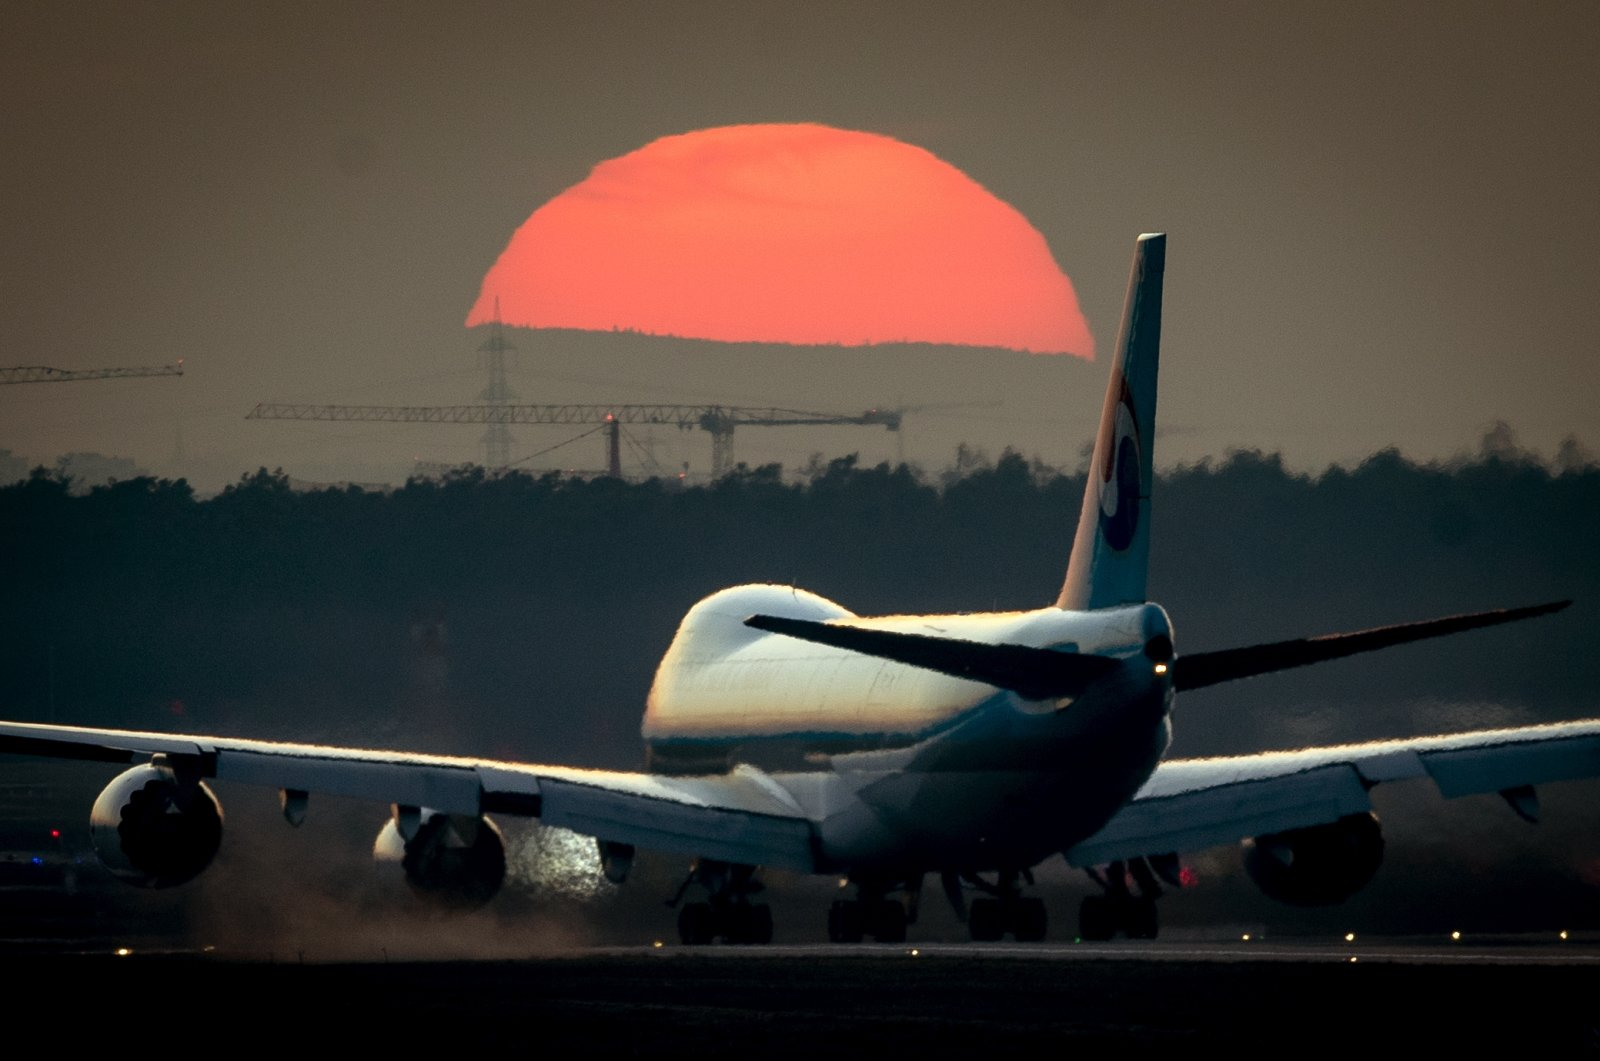 A Boeing 747 aircraft starts as the sun sets at the international airport in Frankfurt, Germany, March 2, 2021. (AP Photo)